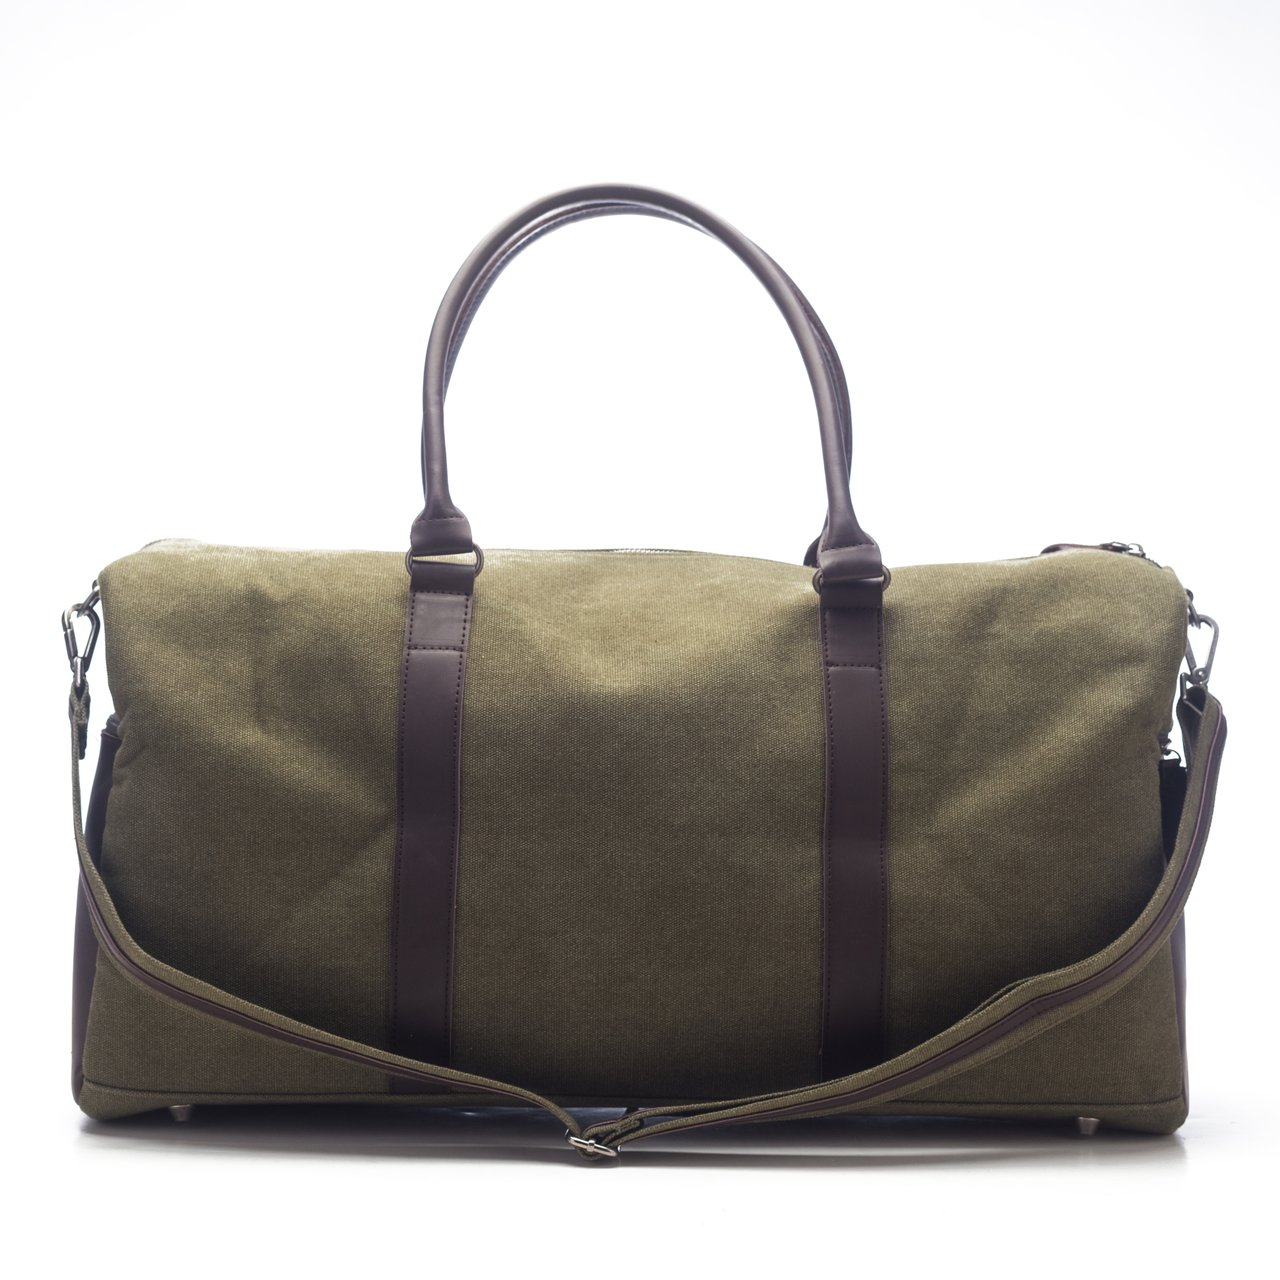 Excursion Duffel in Olive